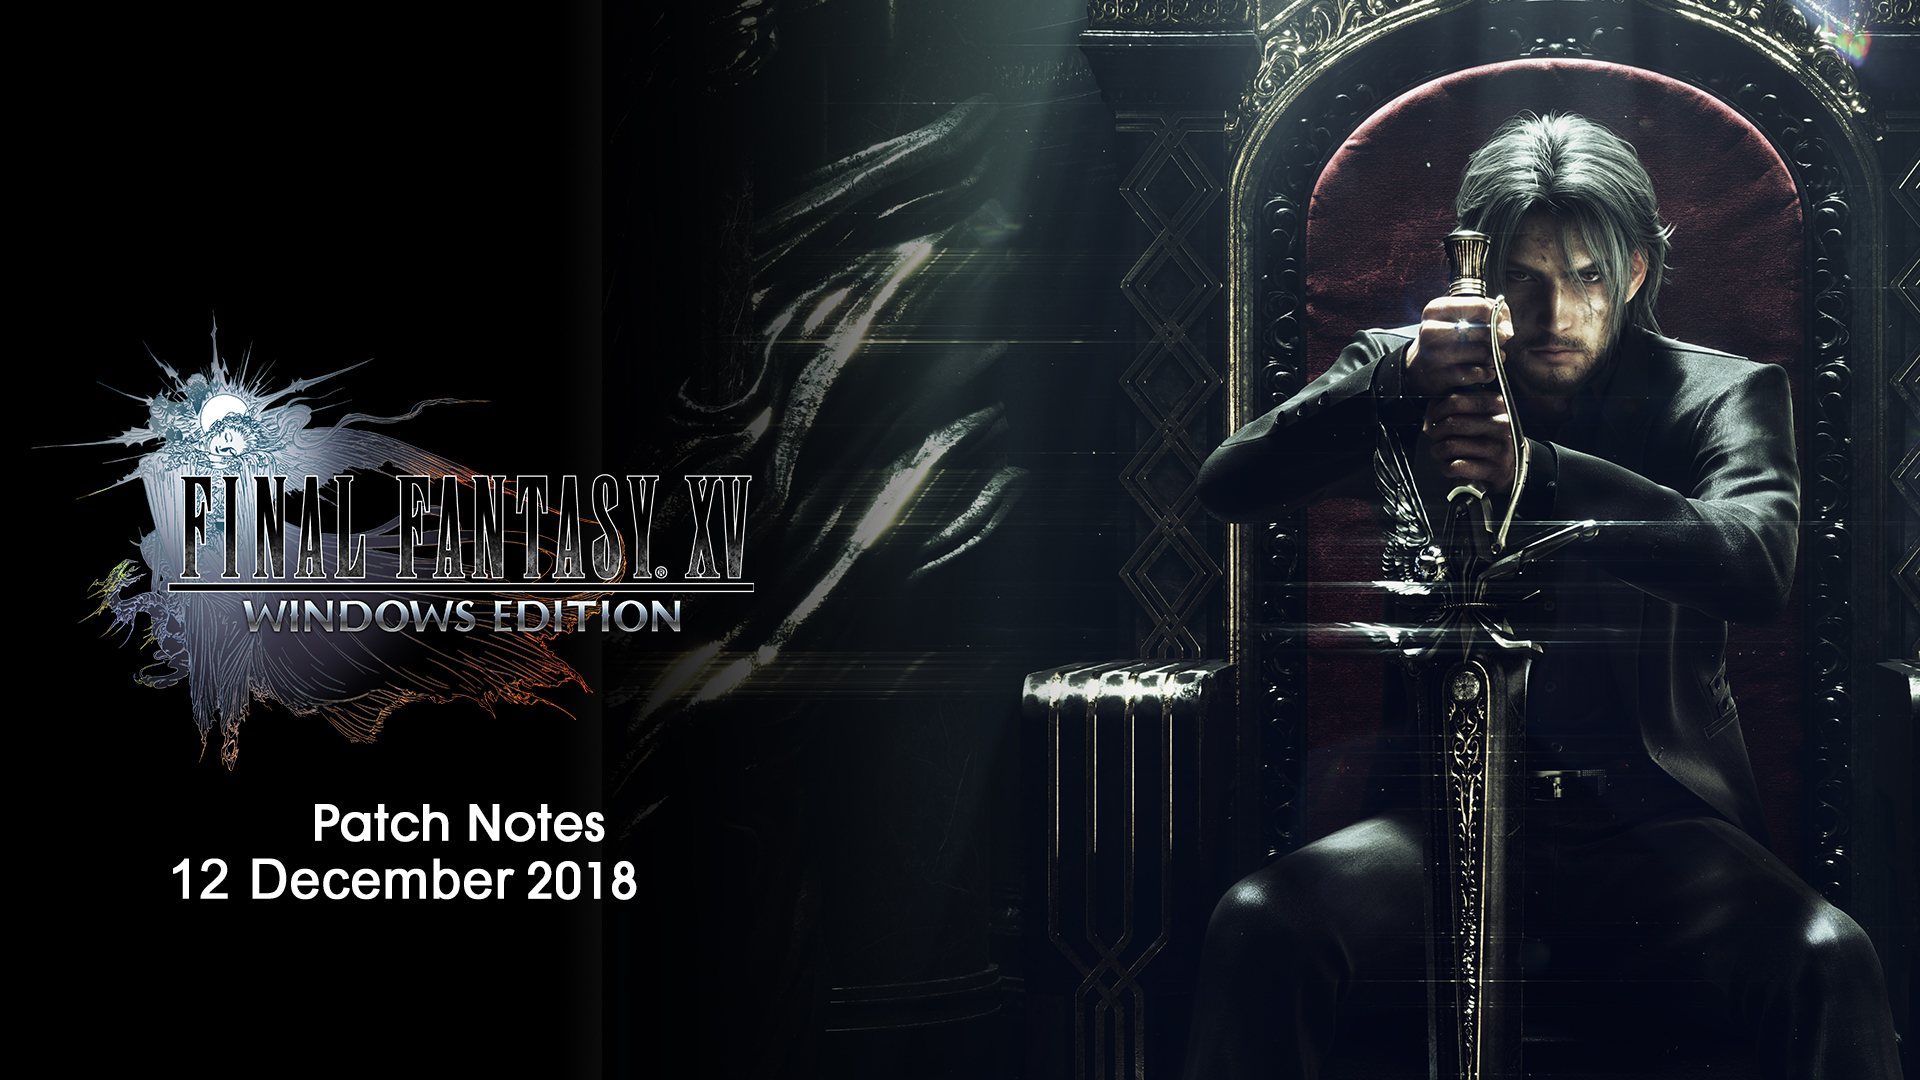 FINAL FANTASY XV WINDOWS EDITION :: December 2018 Updates for FINAL